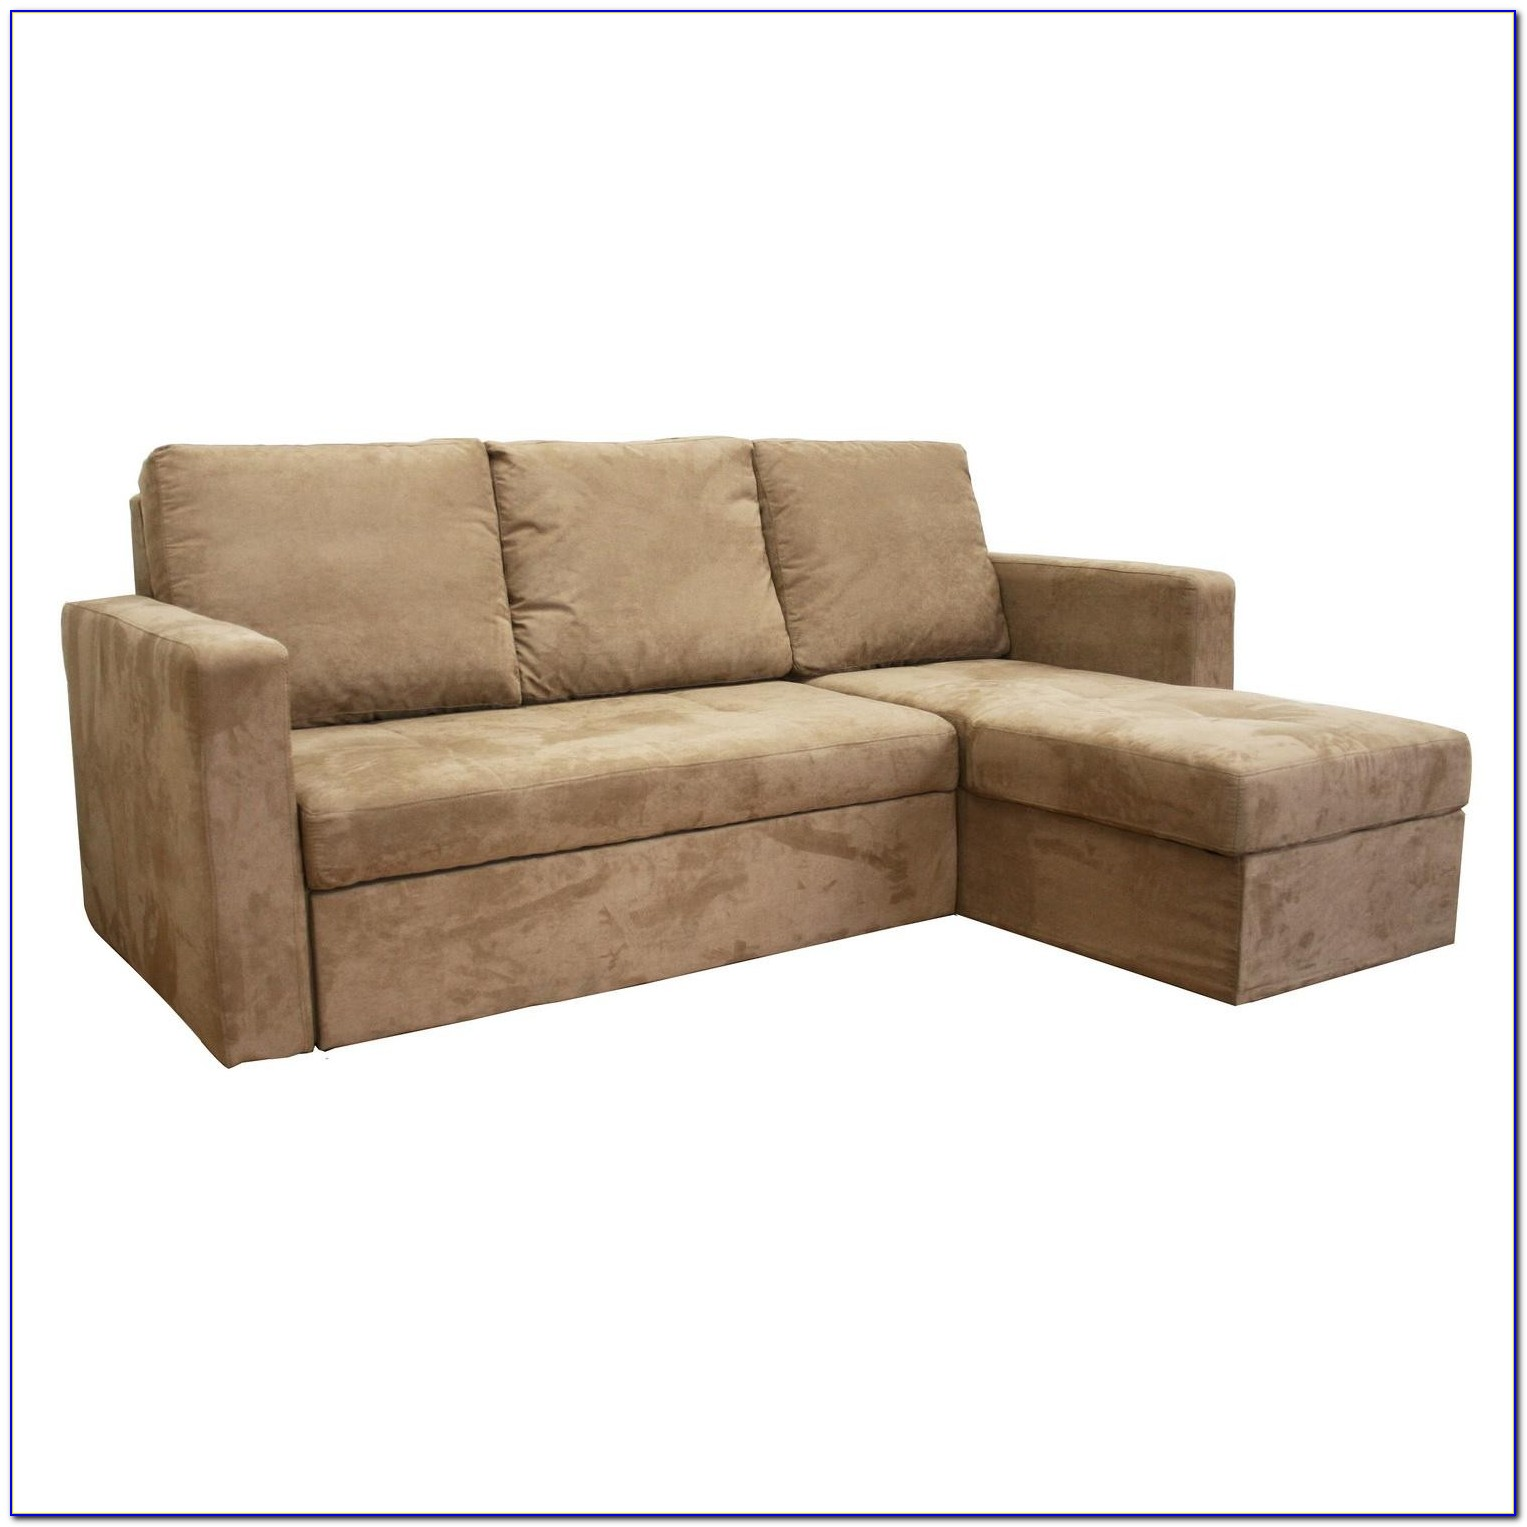 Convertible Sectional Sofa Bed Camel Chocolate